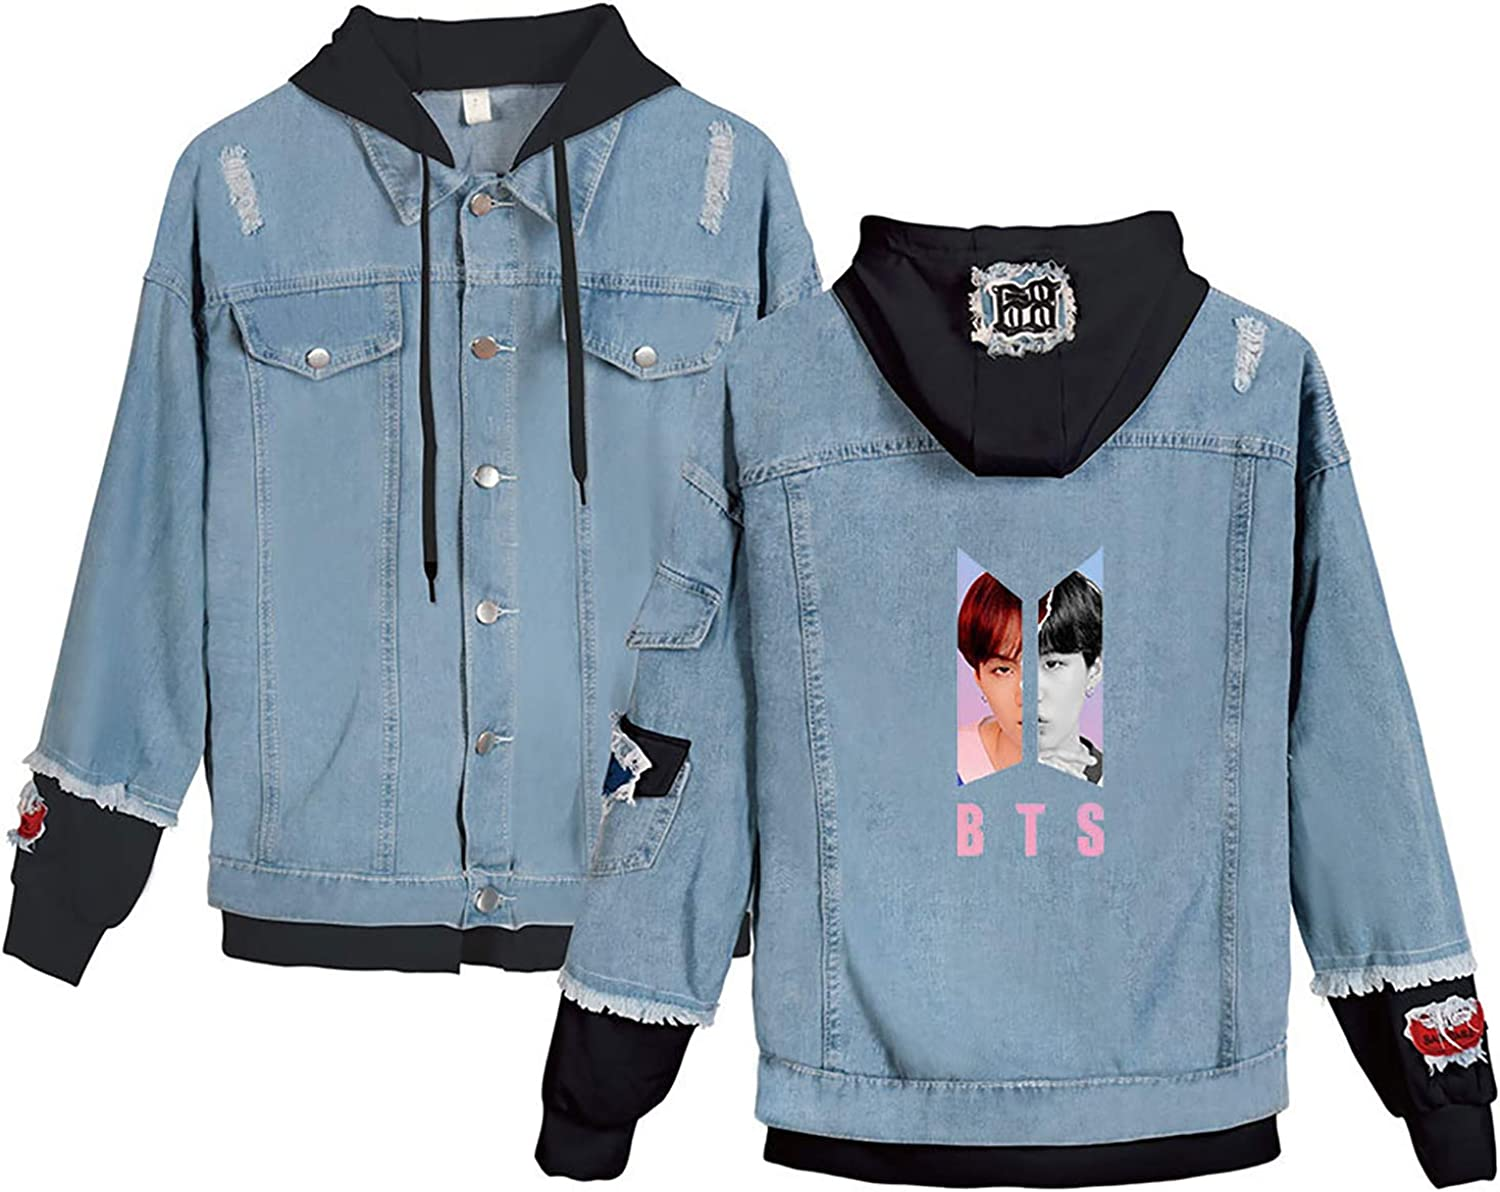 JUNG KOOK Kpop BTS Denim Jacket Love Yourself Jimin SUGA V Army Hoodie Coat Merchandise